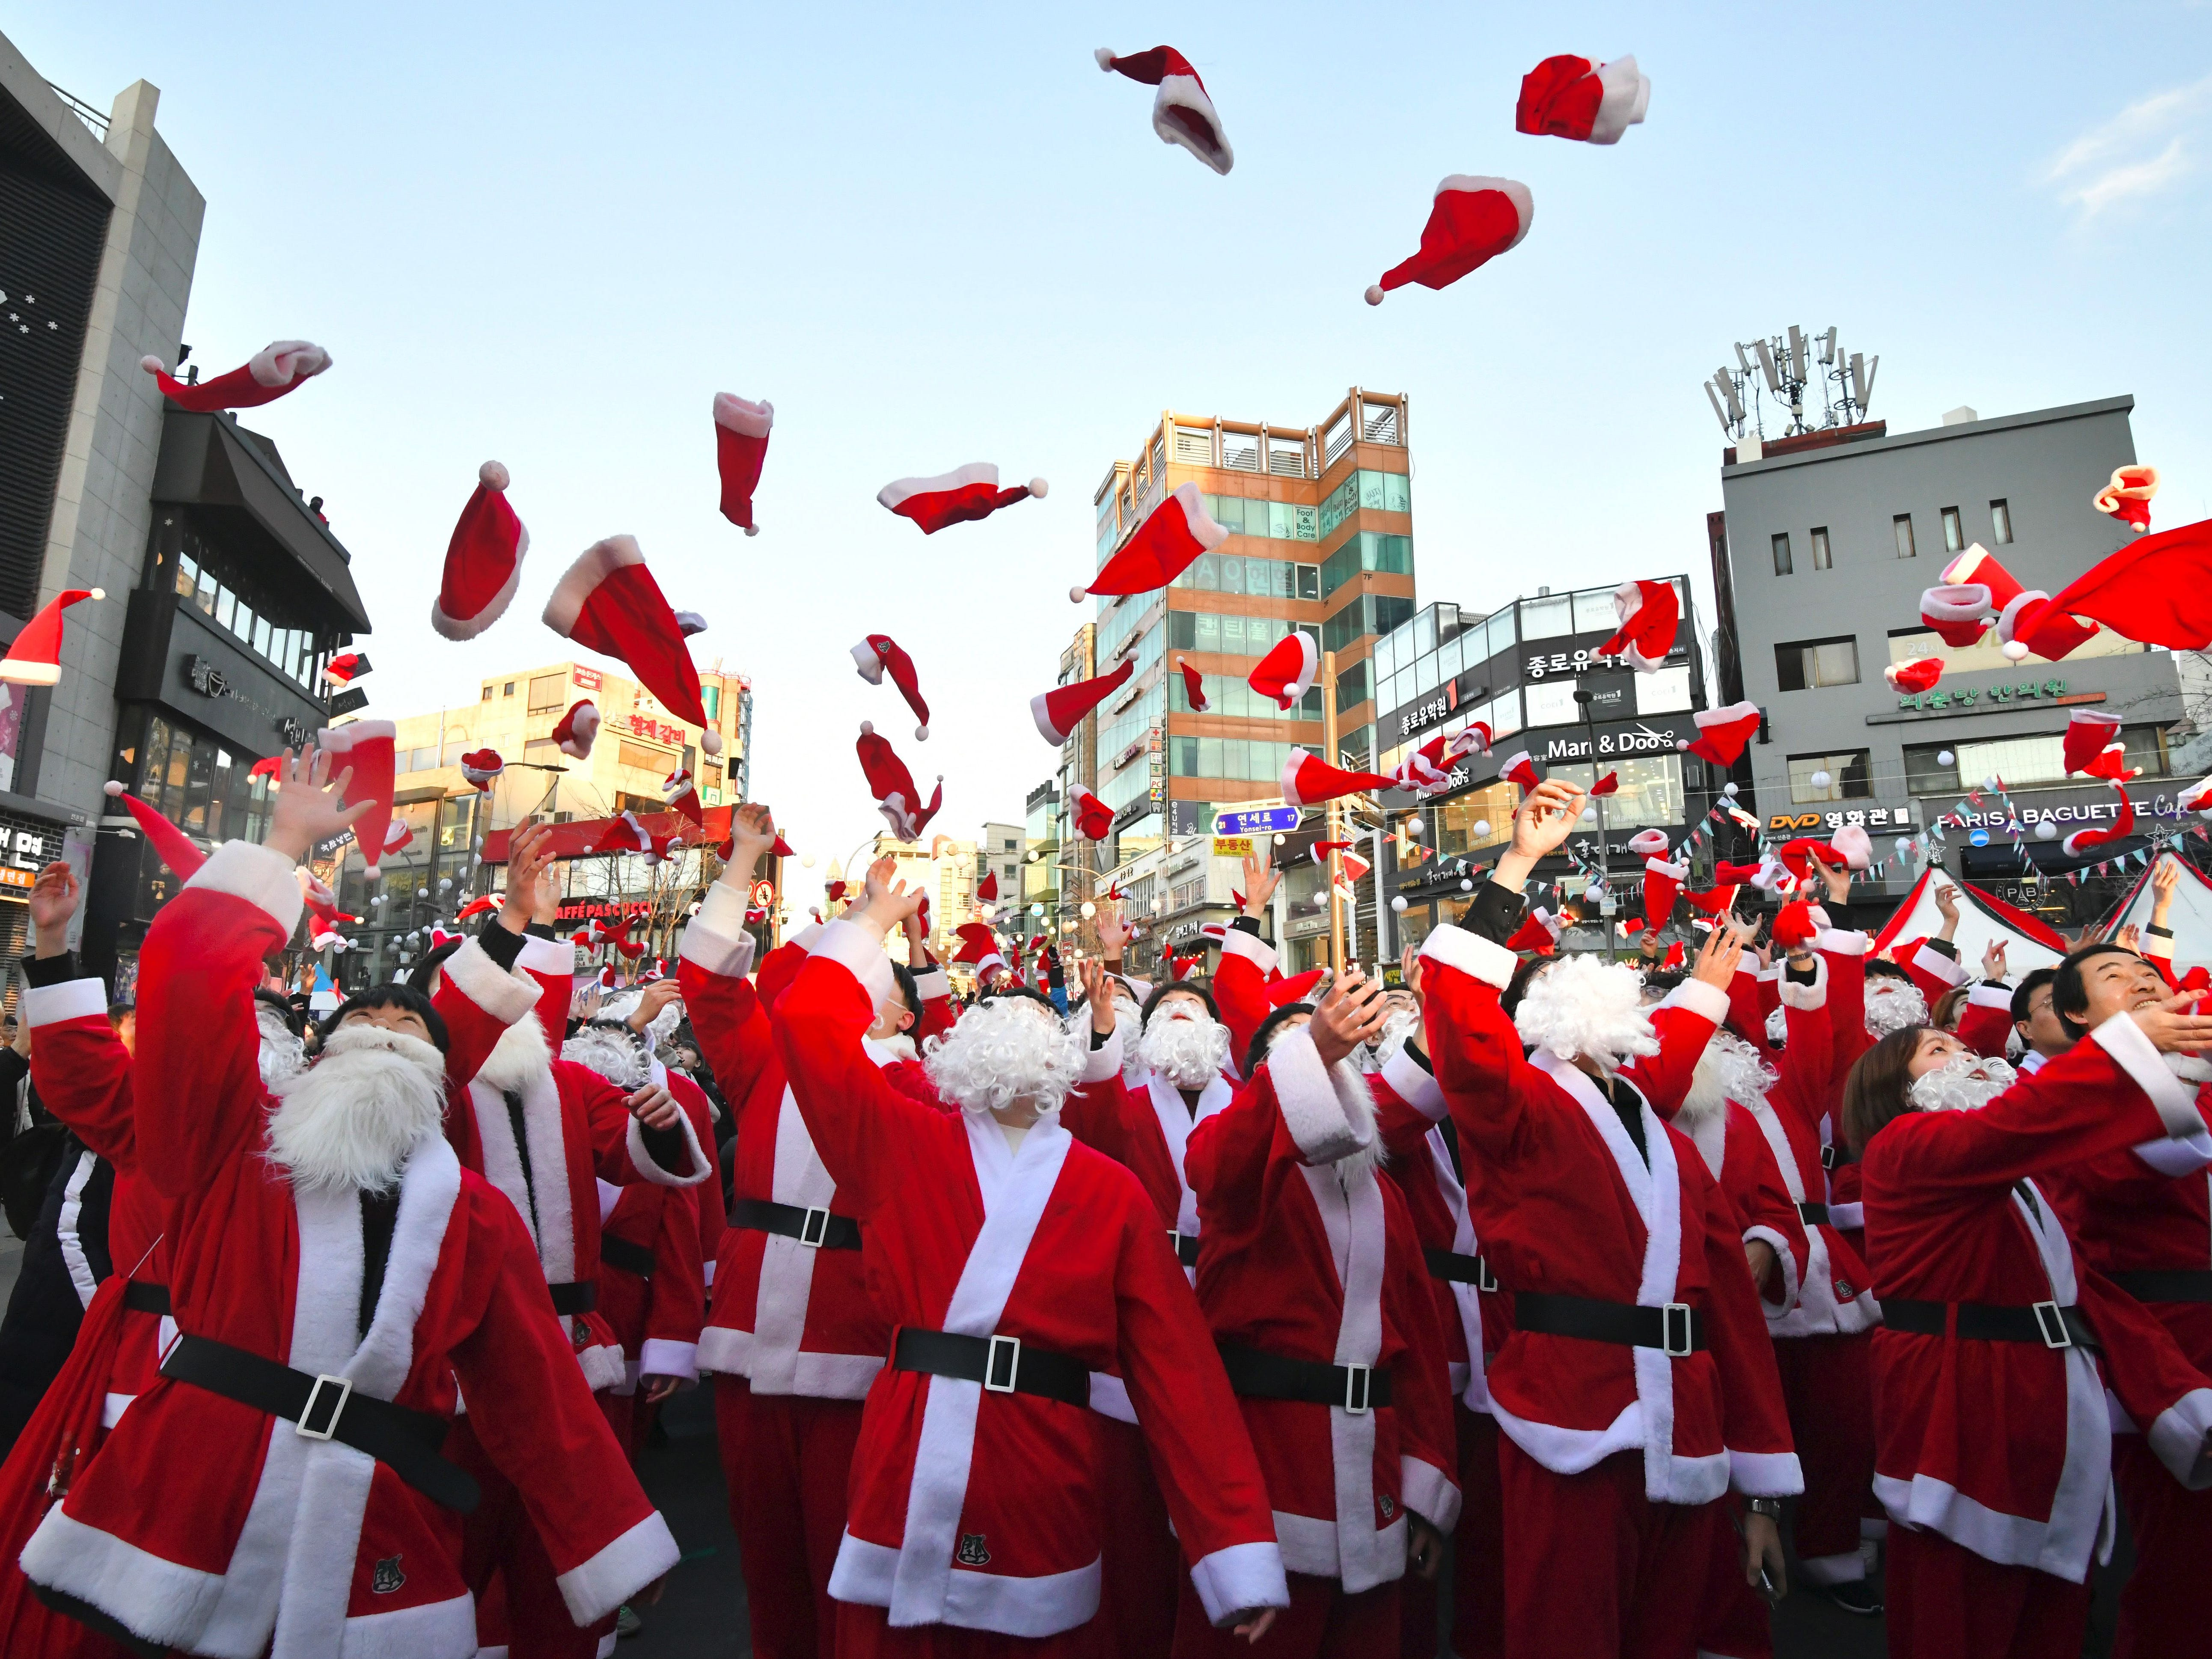 South Korean volunteers in Santa Claus outfits throw Santa hats during a ceremony before the delivery of Christmas gifts in Seoul on December 24, 2018. - The volunteers will deliver Christmas gifts to 1,200 kids from 800 poor families in Seoul on Christmas eve.